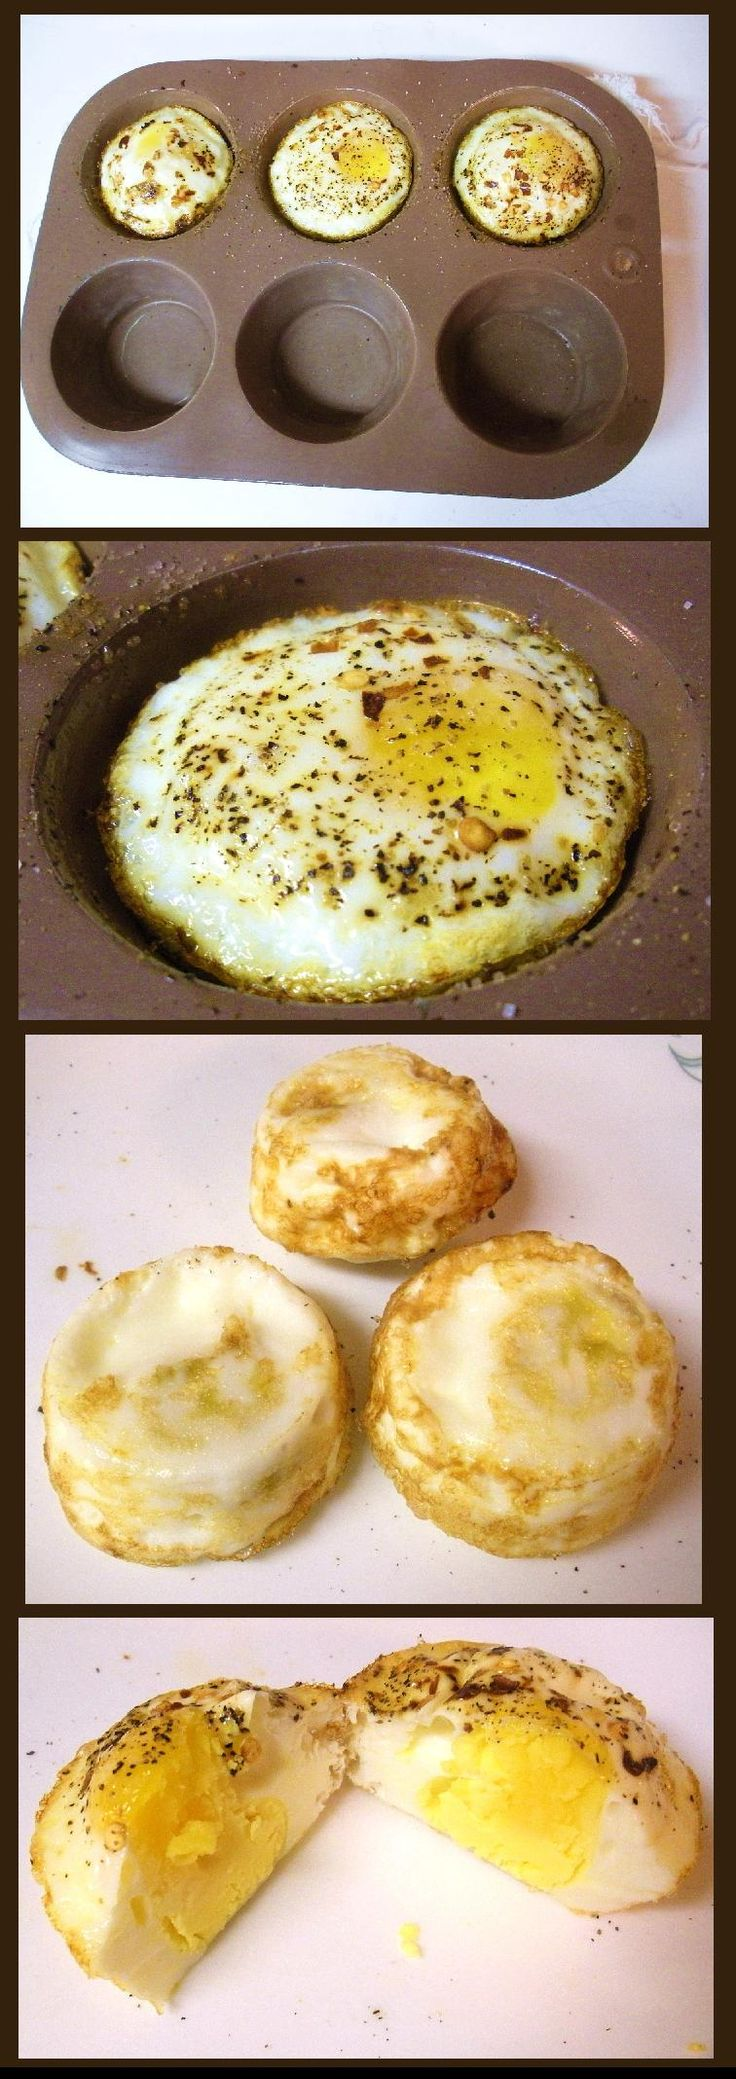 Great fast breakfast idea - Broiled Eggs: Preheat oven to 450 degrees F. Lightly butter a muffin tin & put one egg per well. Add salt, pepper & any SCD seasonings you like. Broil for about 10 minutes (a little less if you like the yolk runny). Eat up!